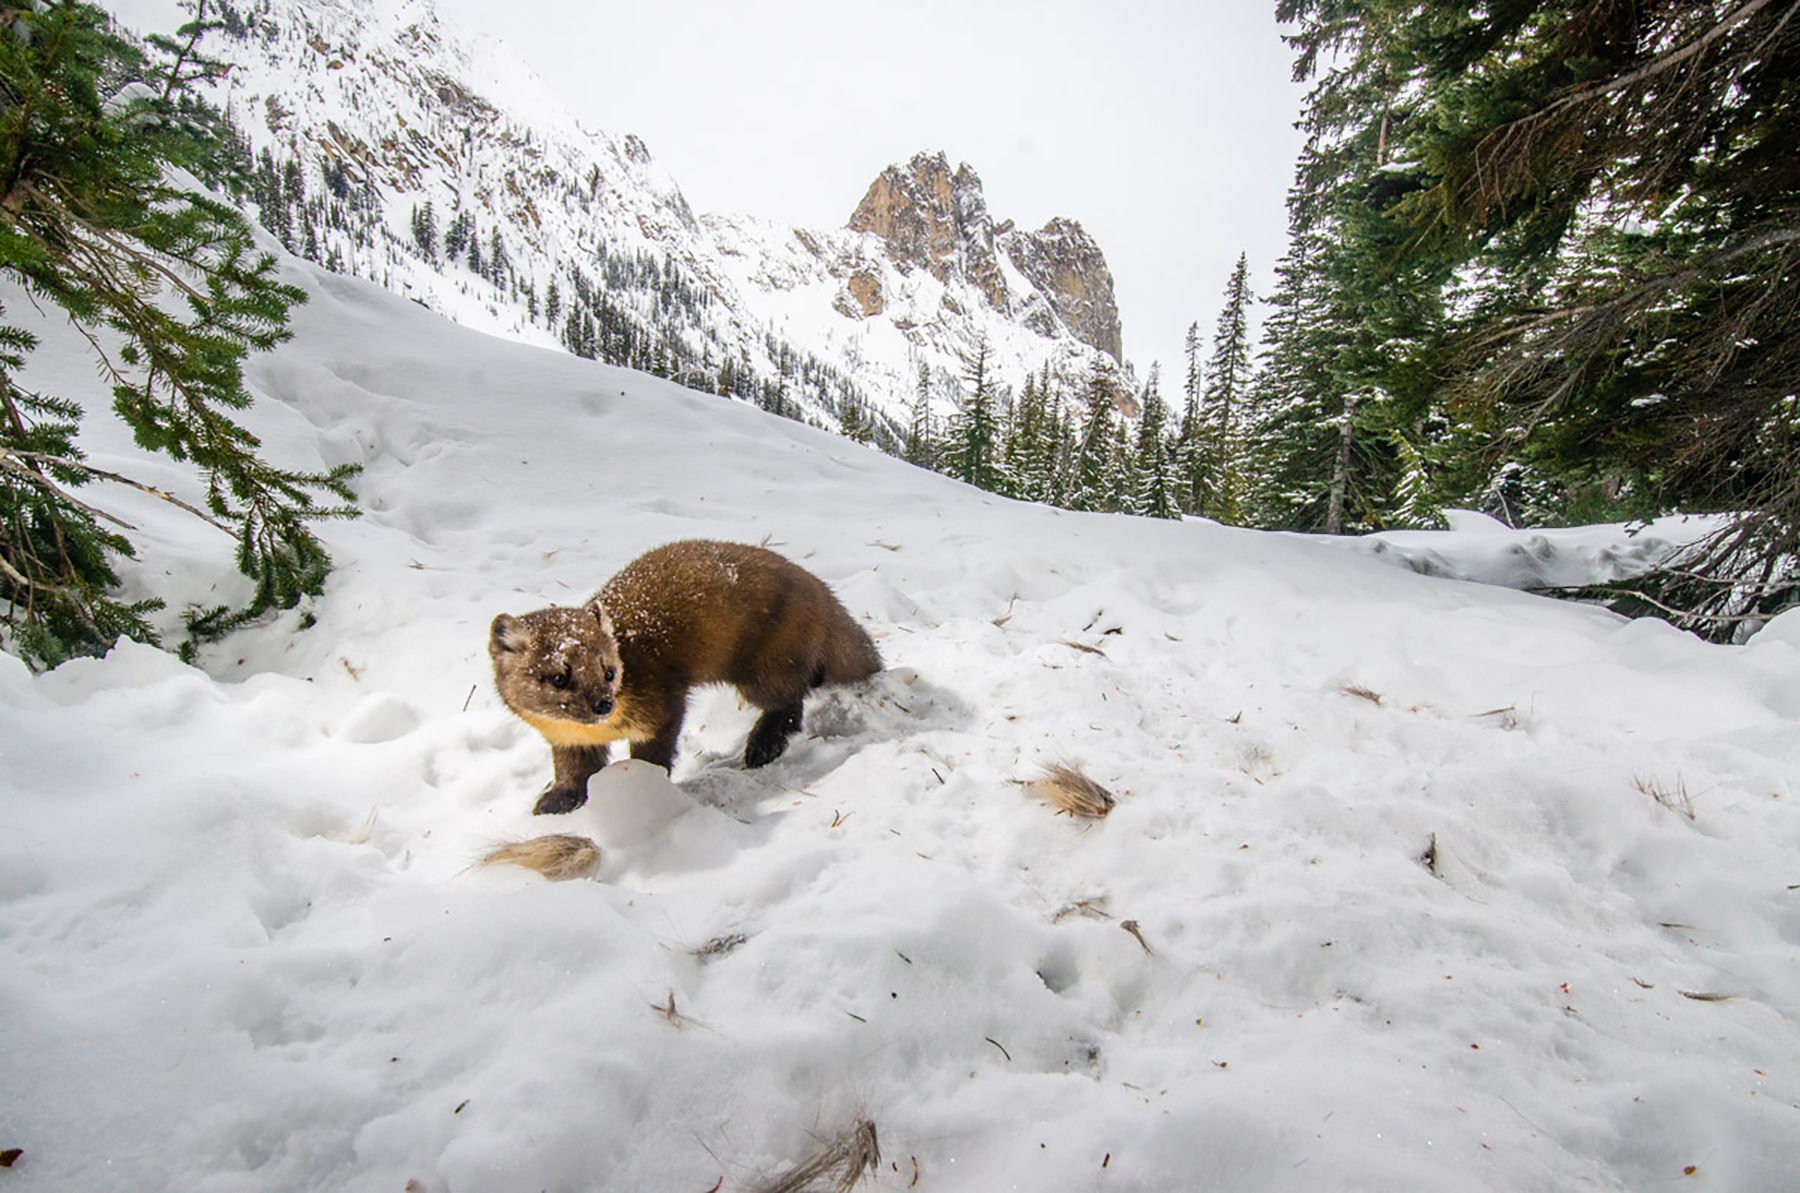 Martens once roamed the Olympic Peninsula. Today, researchers are trying to determine whether a viable population still exists there. Photo by David Moskowitz.